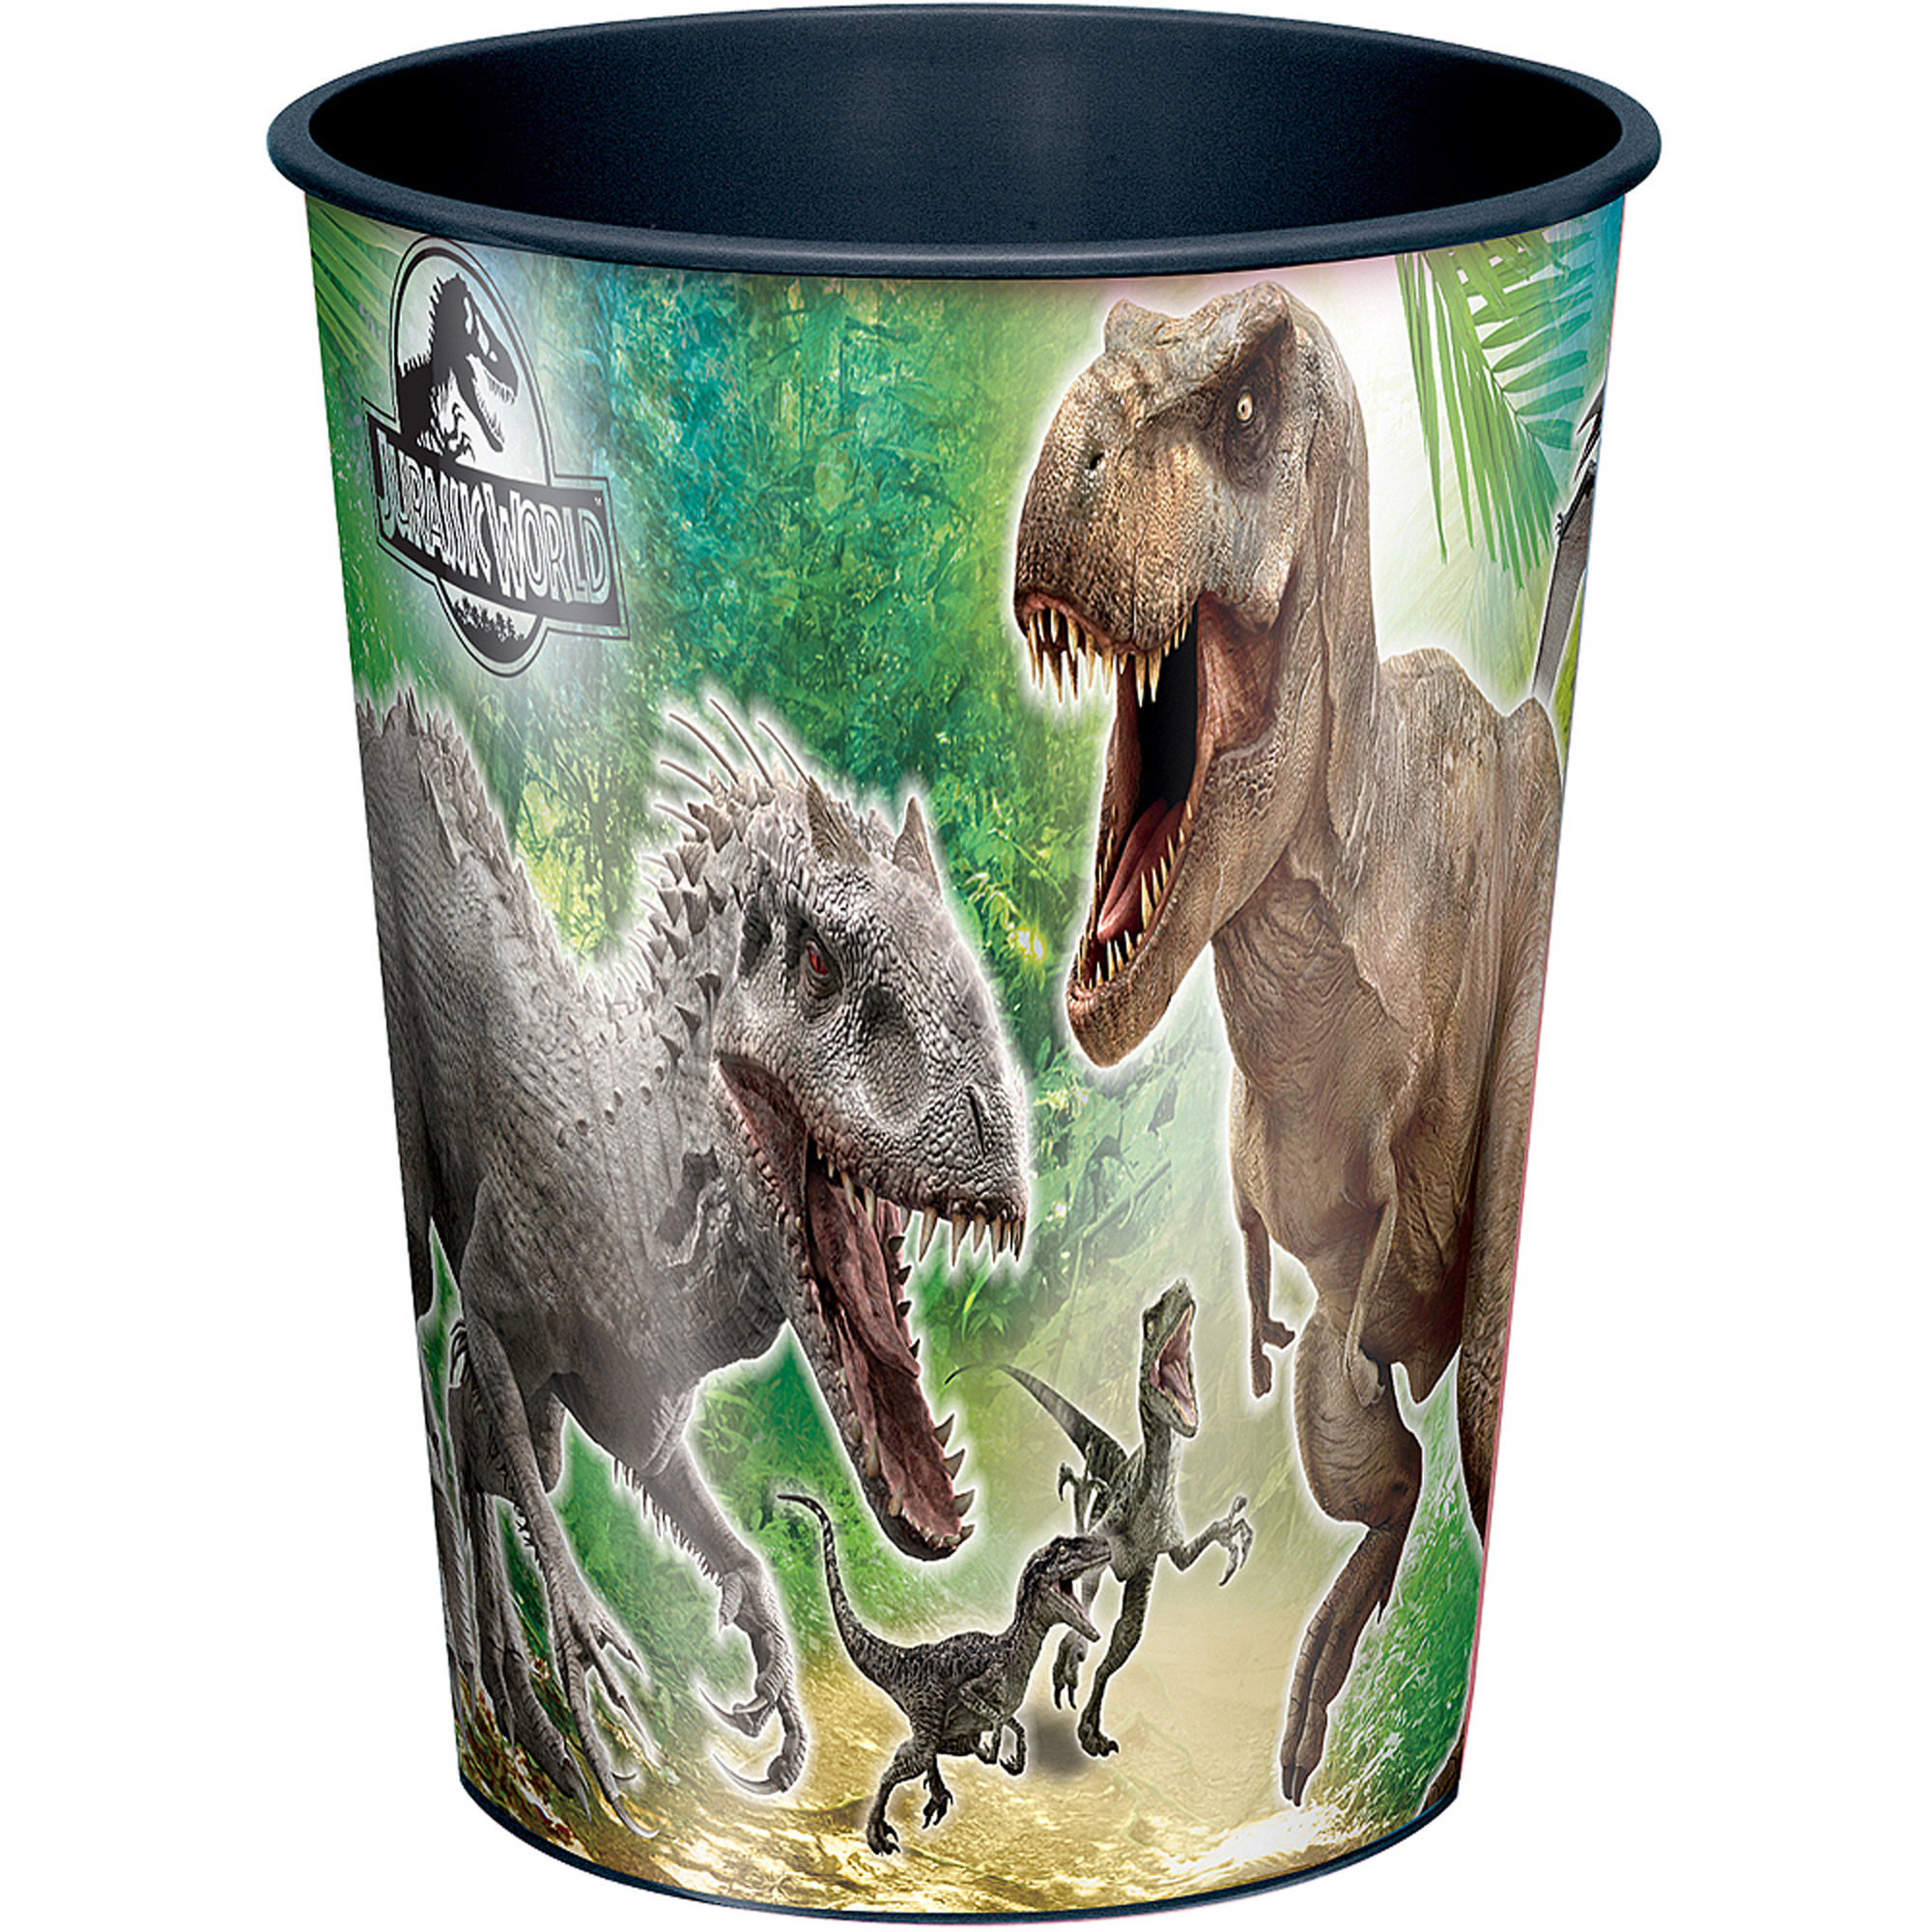 16-Ounce Jurassic World Plastic Cup